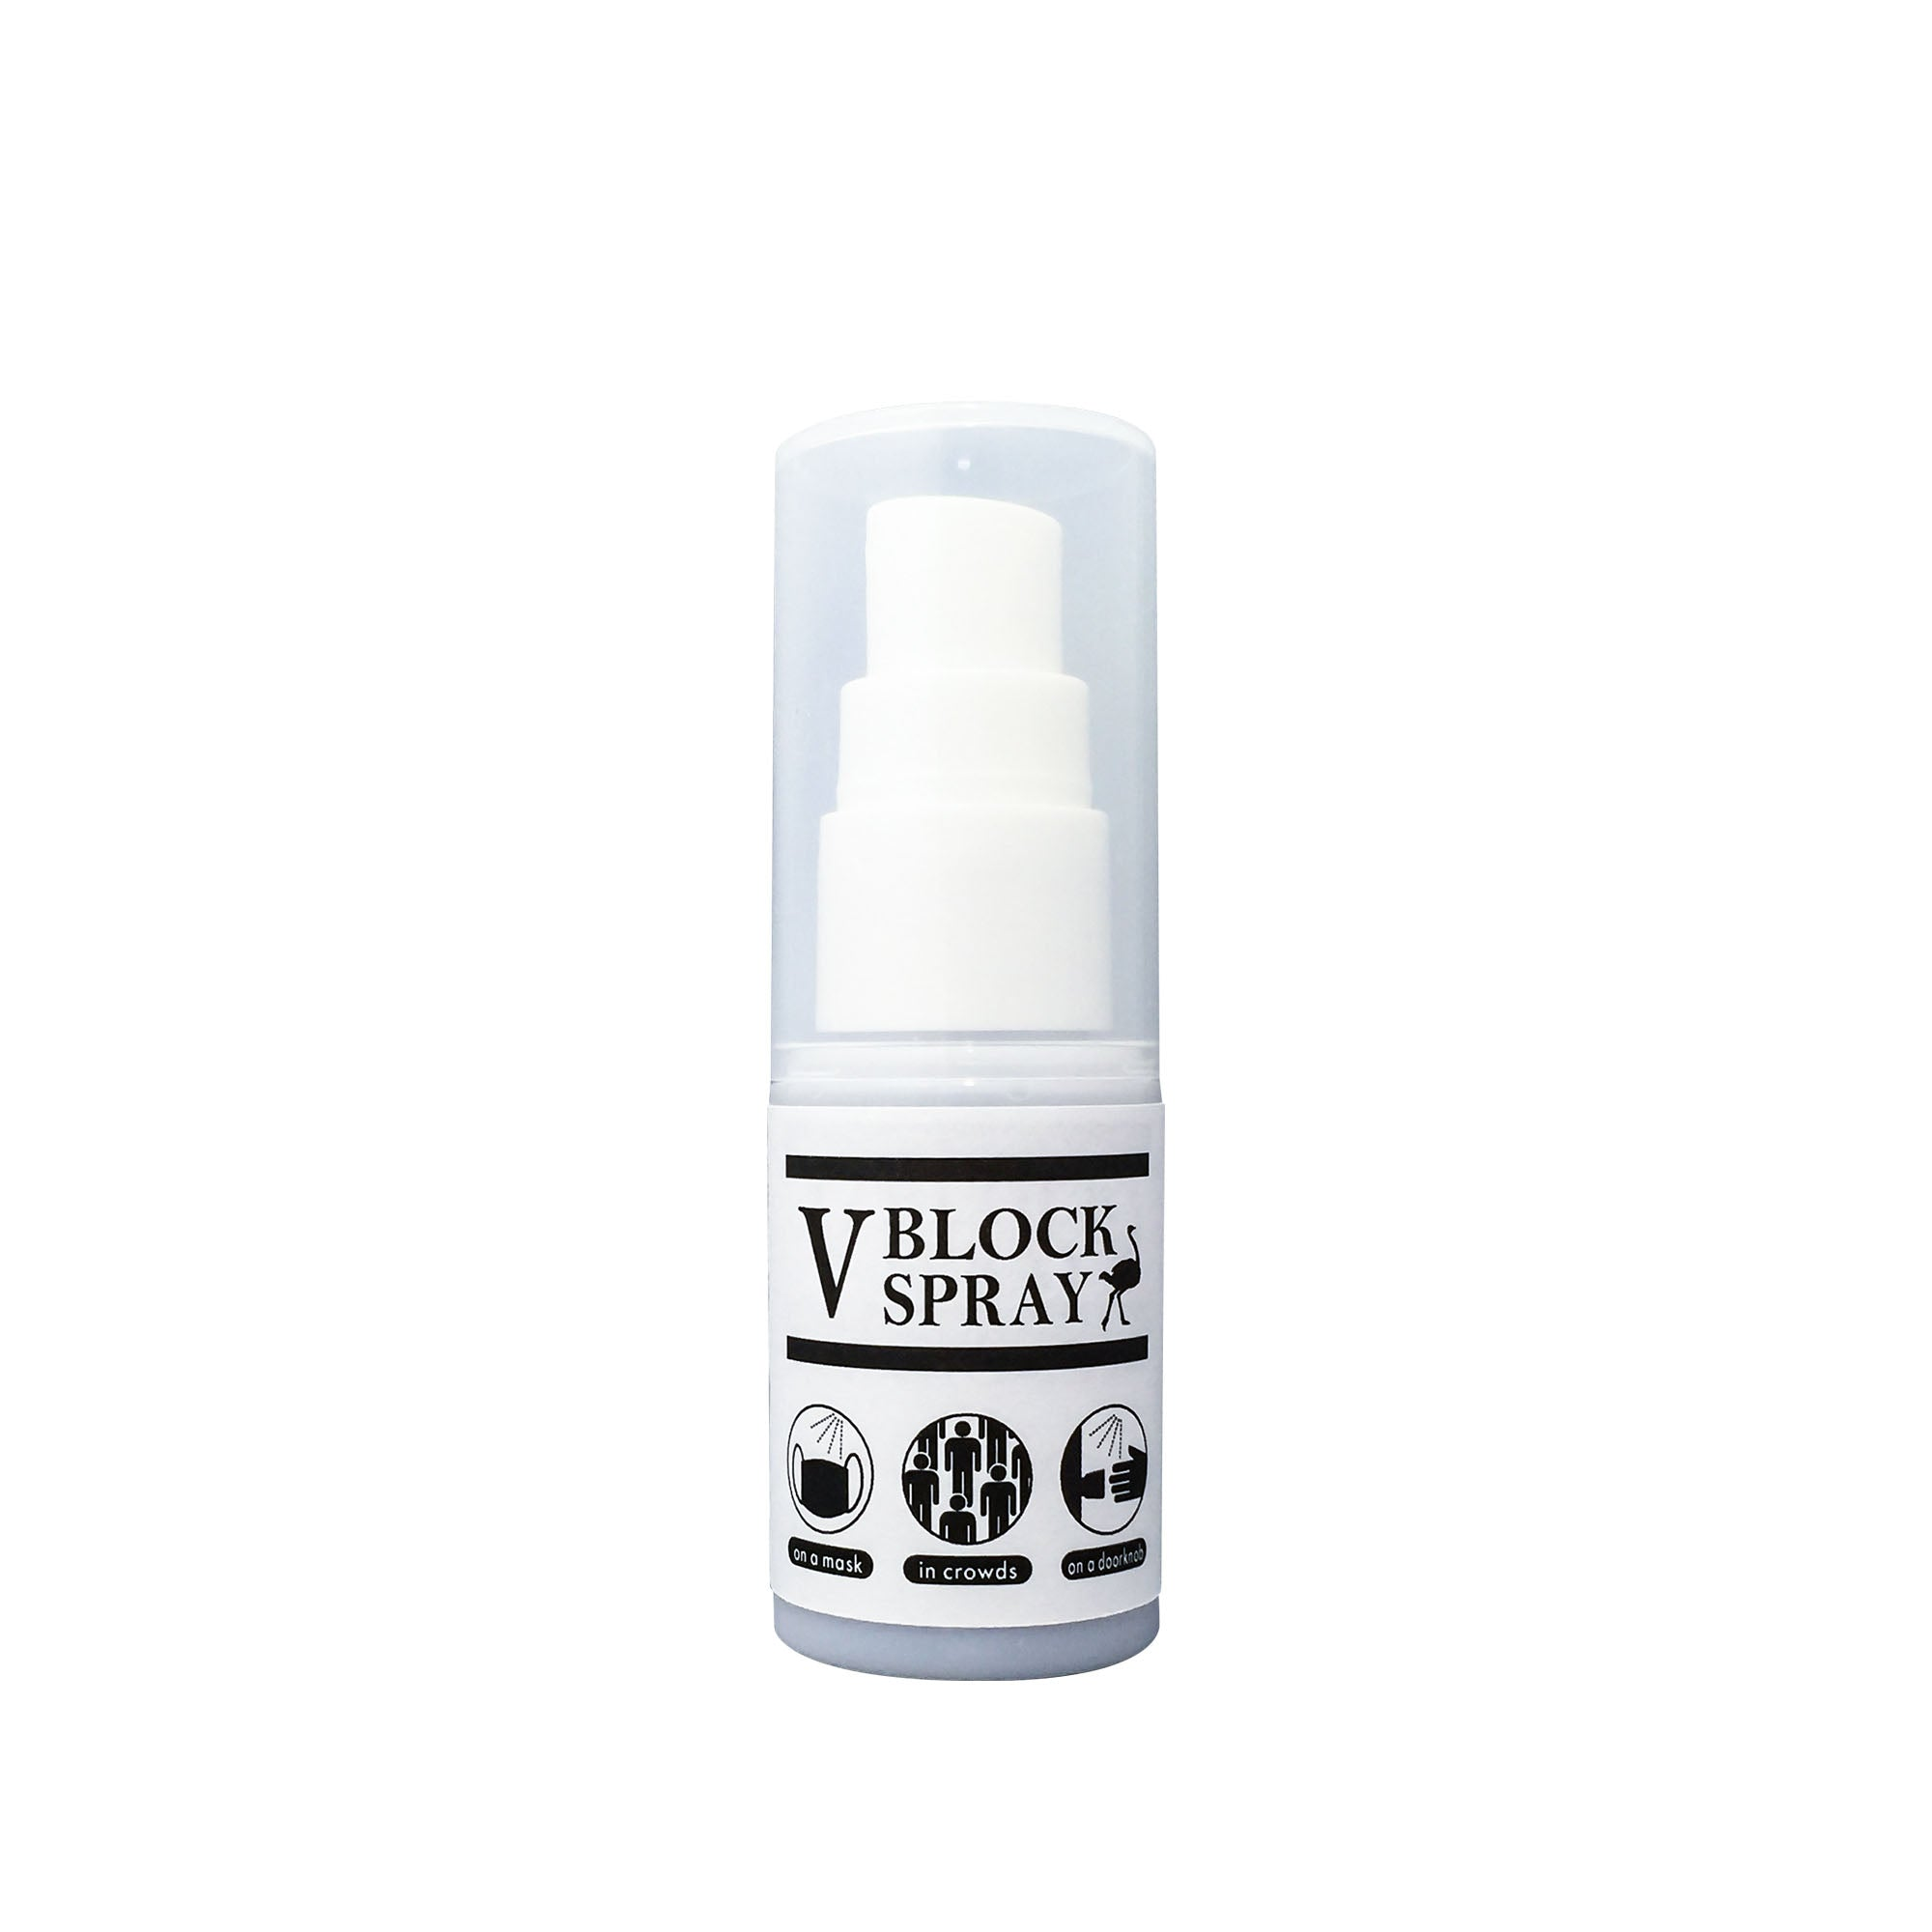 V Block Antiviral Spray